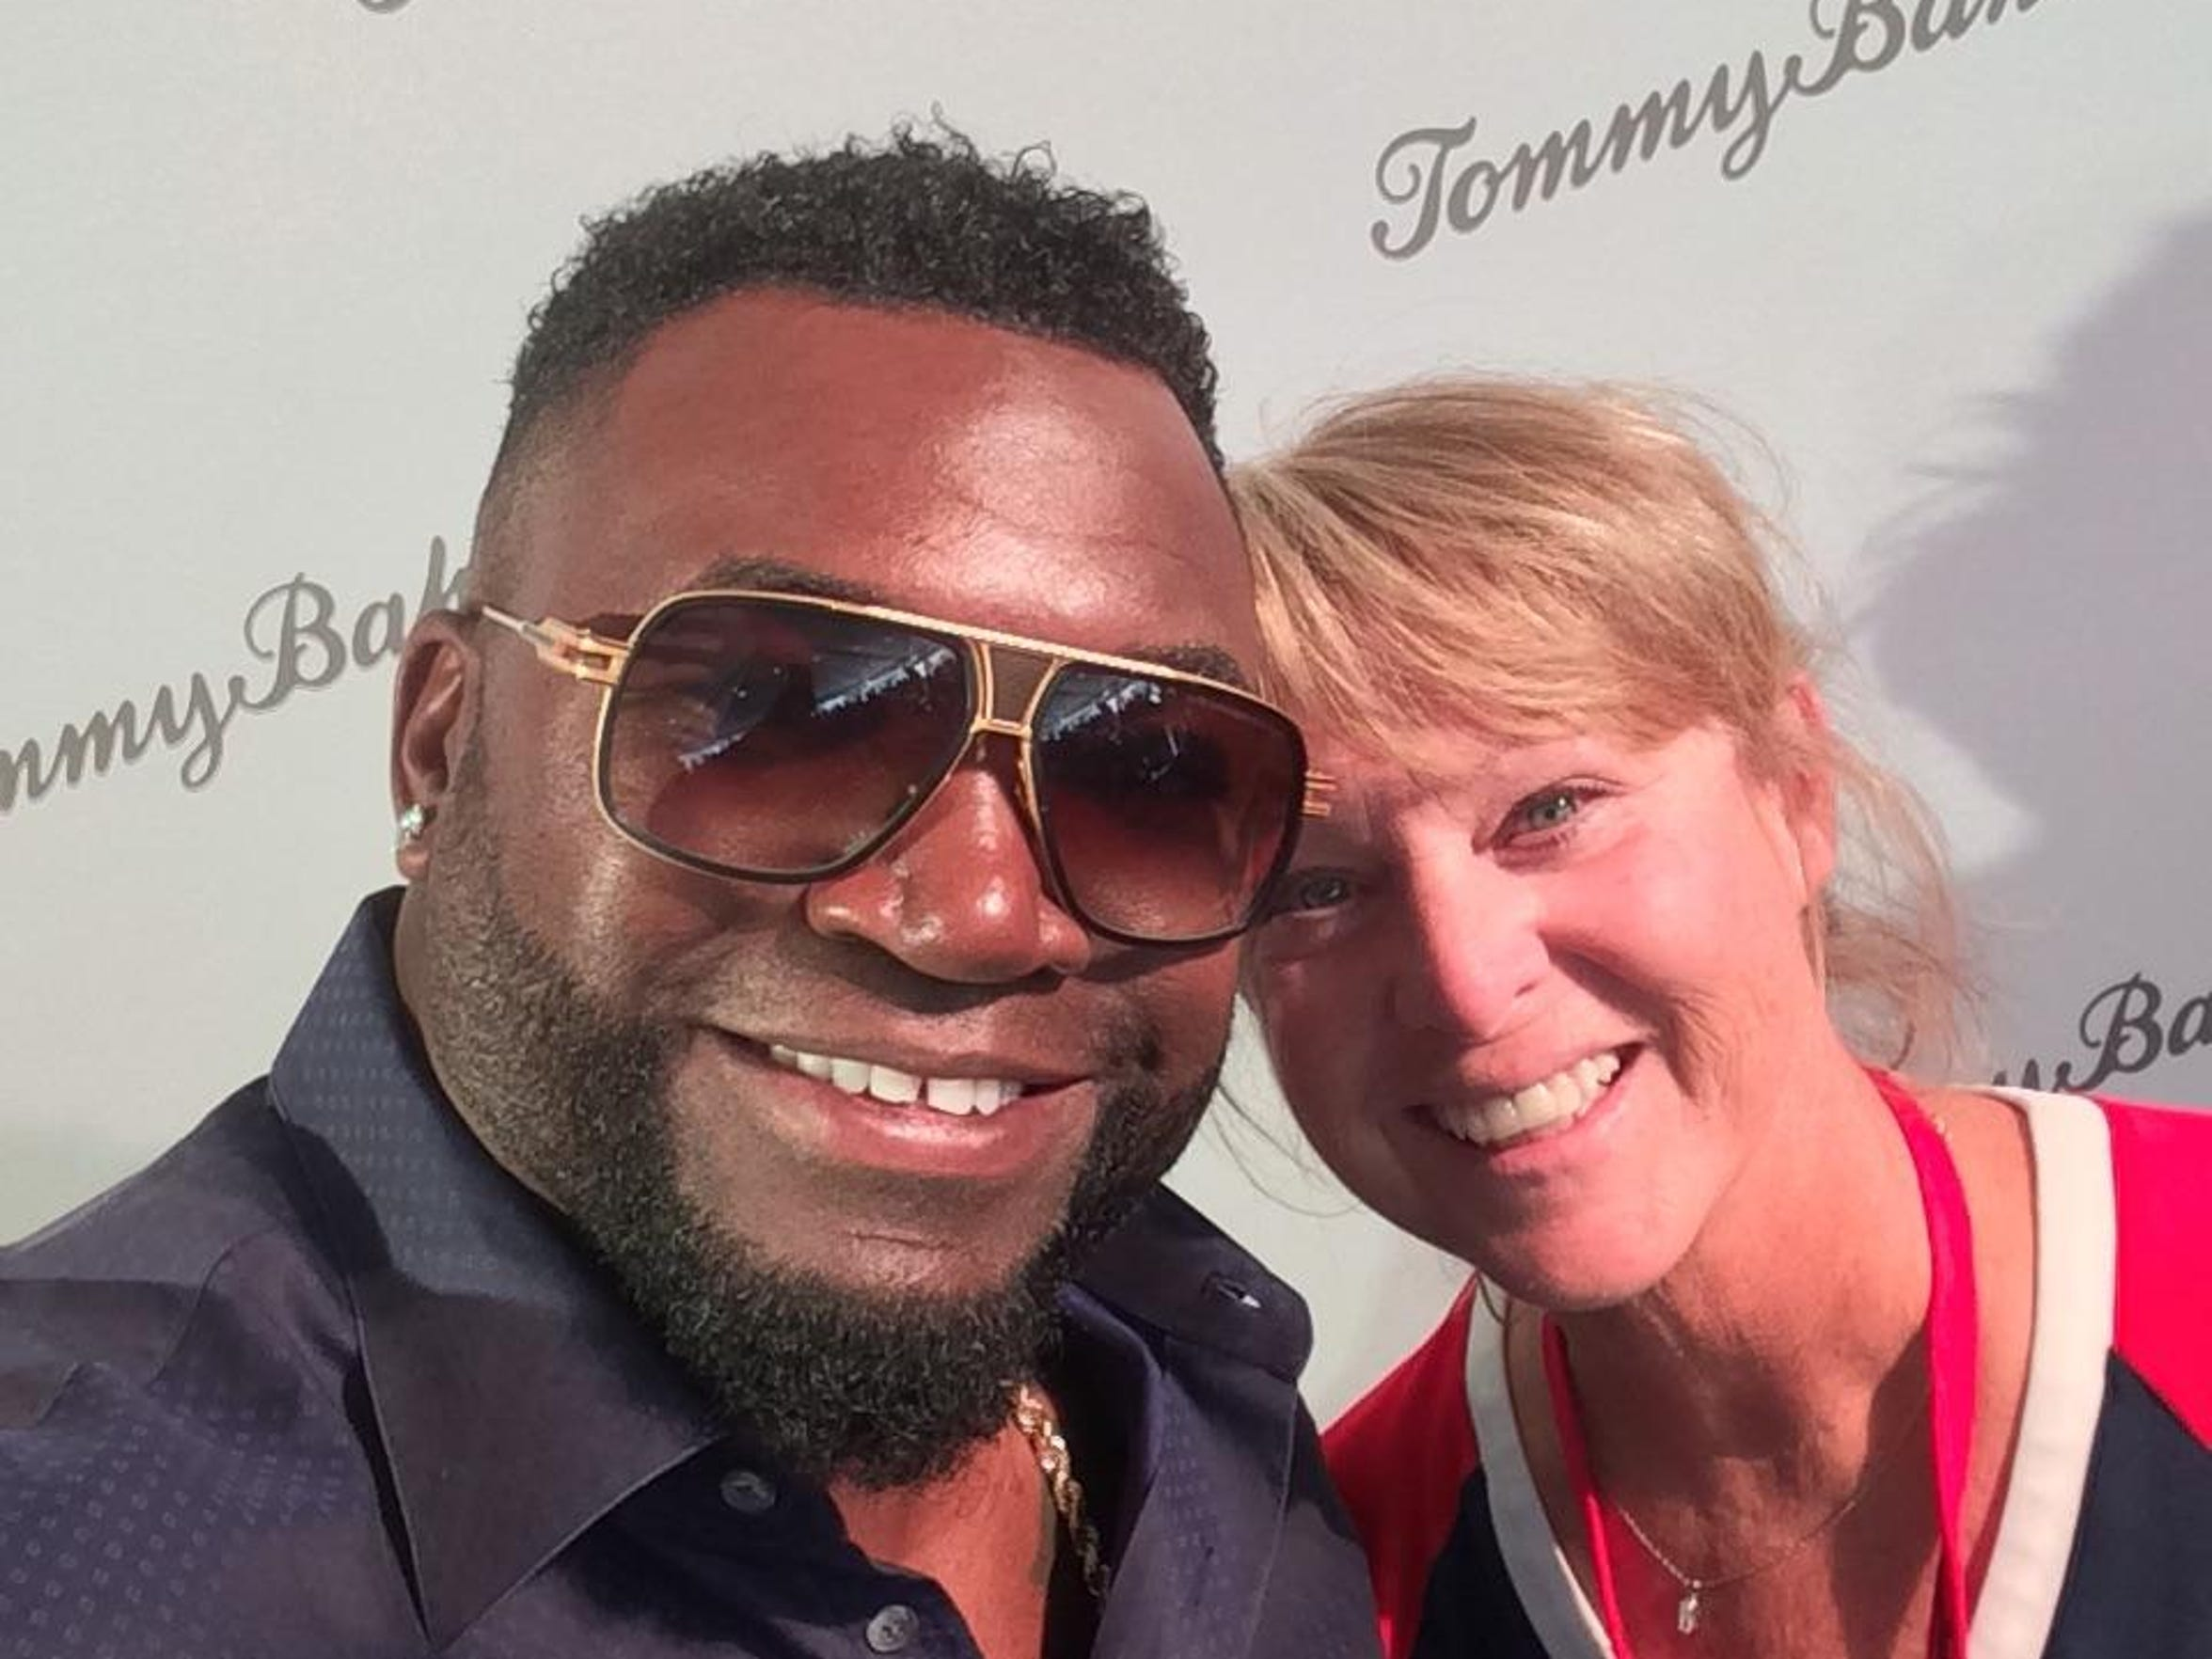 David Ortiz snaps a selfie with Kathleen Paton, a part-time Sanibel Island resident, at a fundraiser for the David Ortiz Children's Fund.